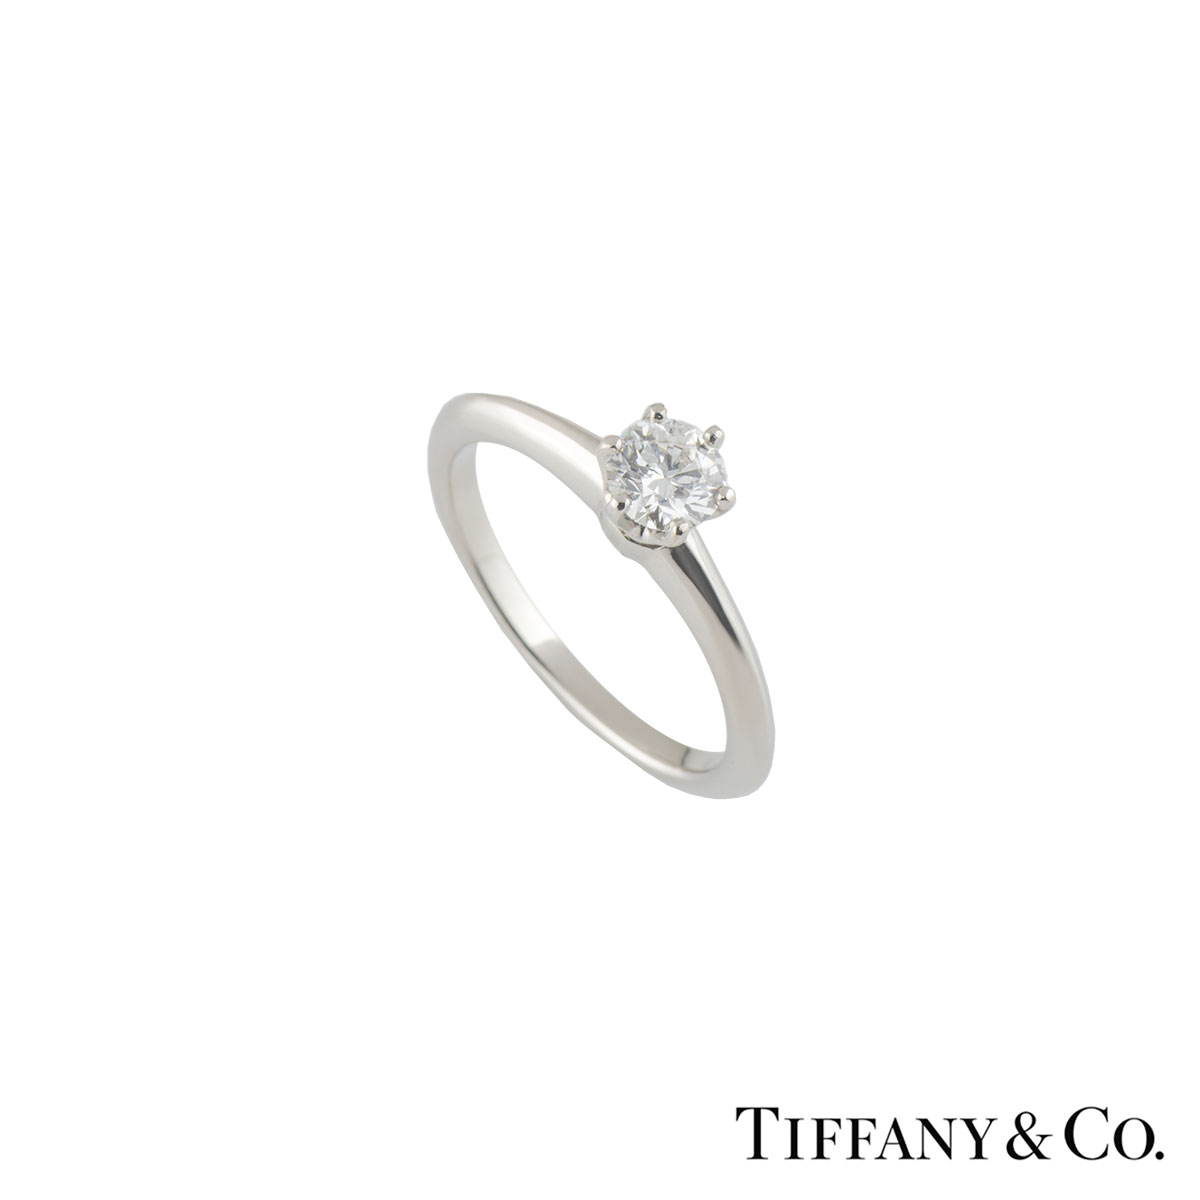 Tiffany & Co. Setting Diamond Ring 0.41ct D/VS1